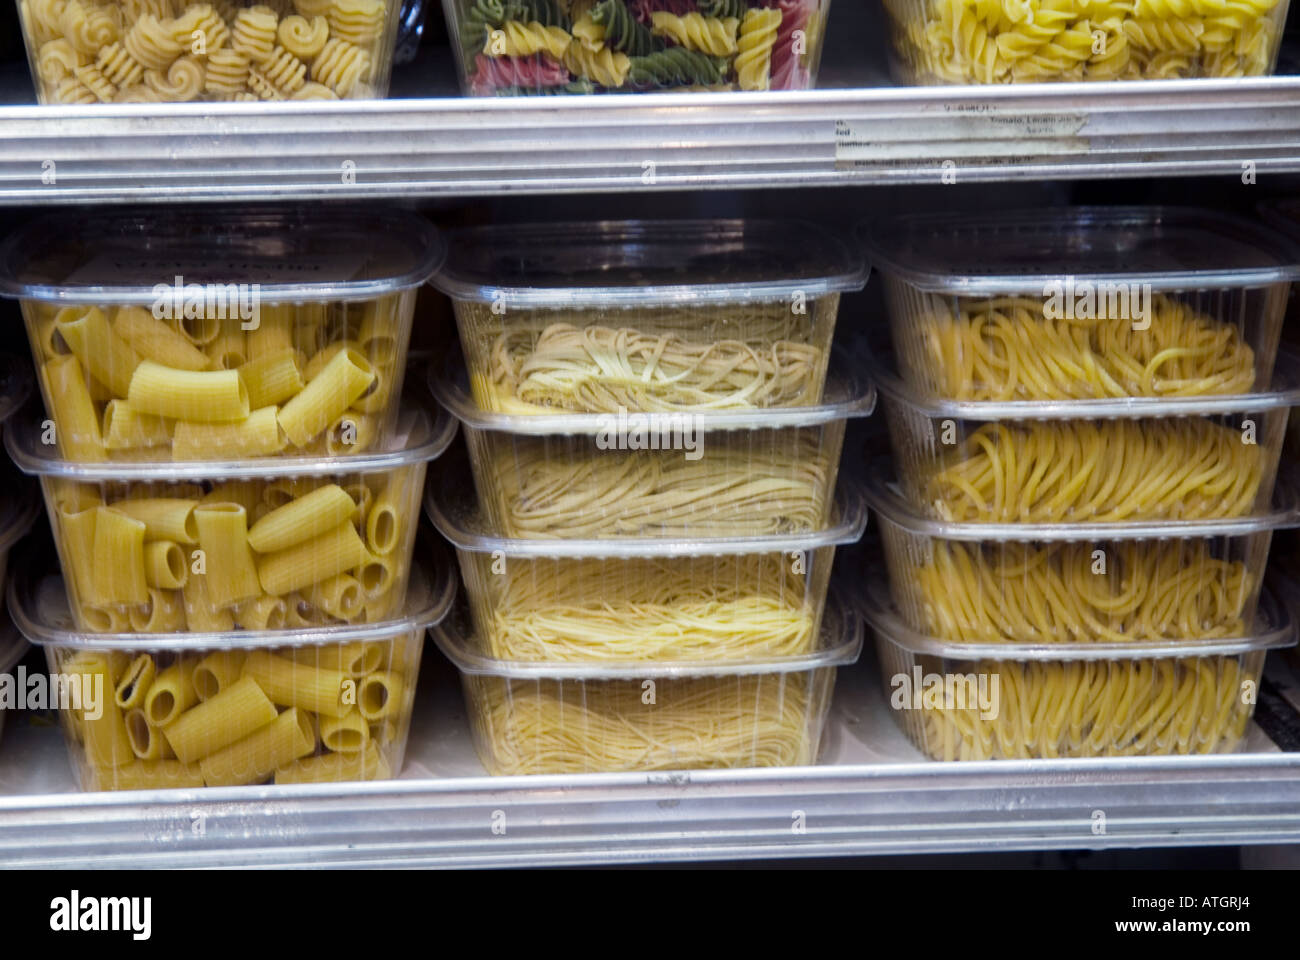 Commercial Plastic Food Containers